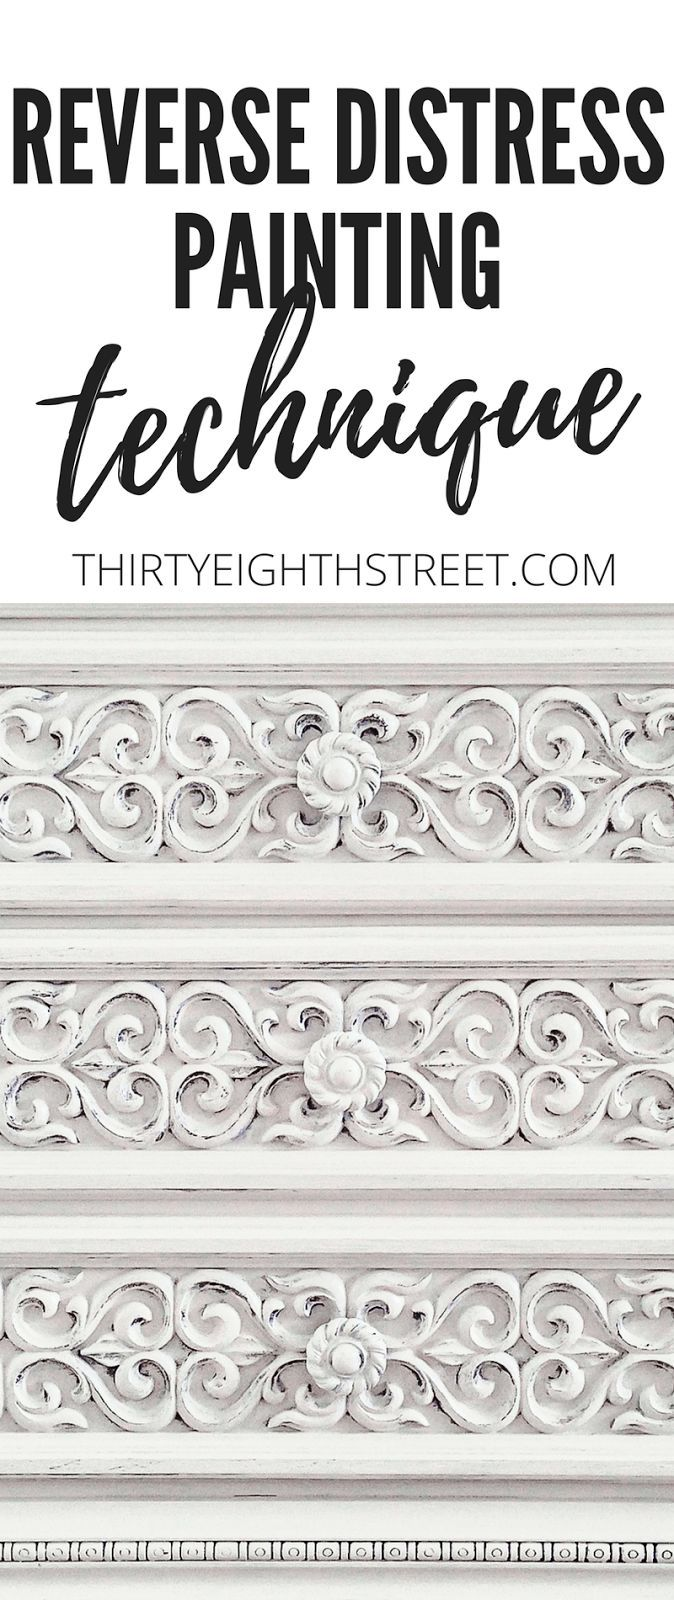 How To Paint and Distress Furniture Easily Using the Reverse Distress Painting Technique. Learn How To Distress Furniture Naturally with Reverse Distressing. | Thirty Eighth Street